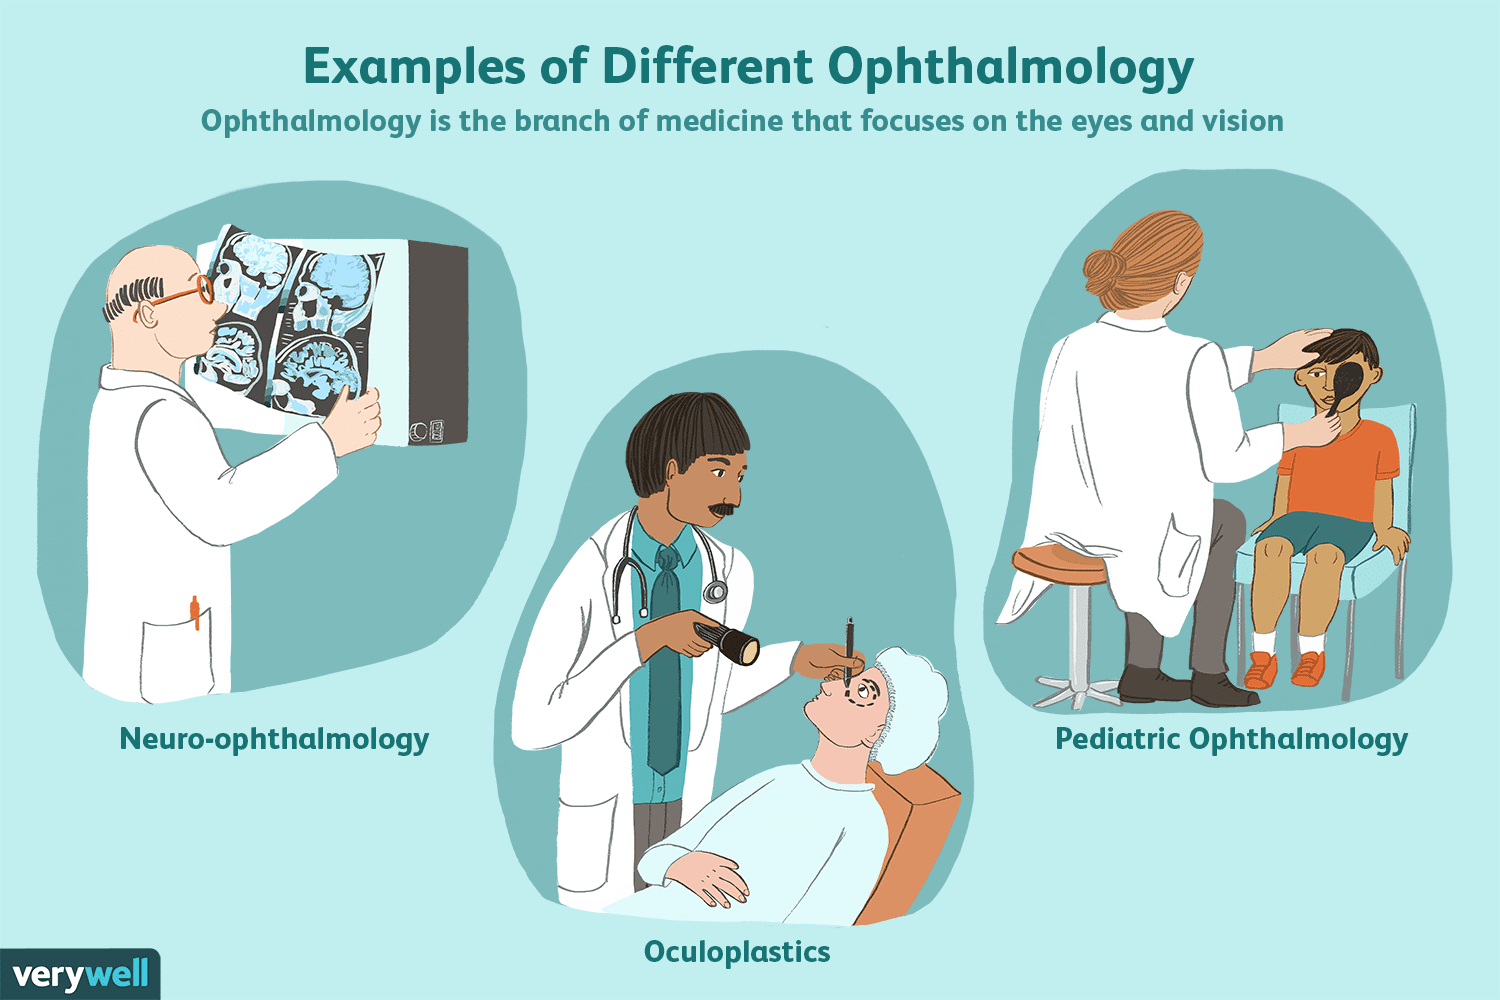 Ophthalmologist: Expertise, Specialties, and Training